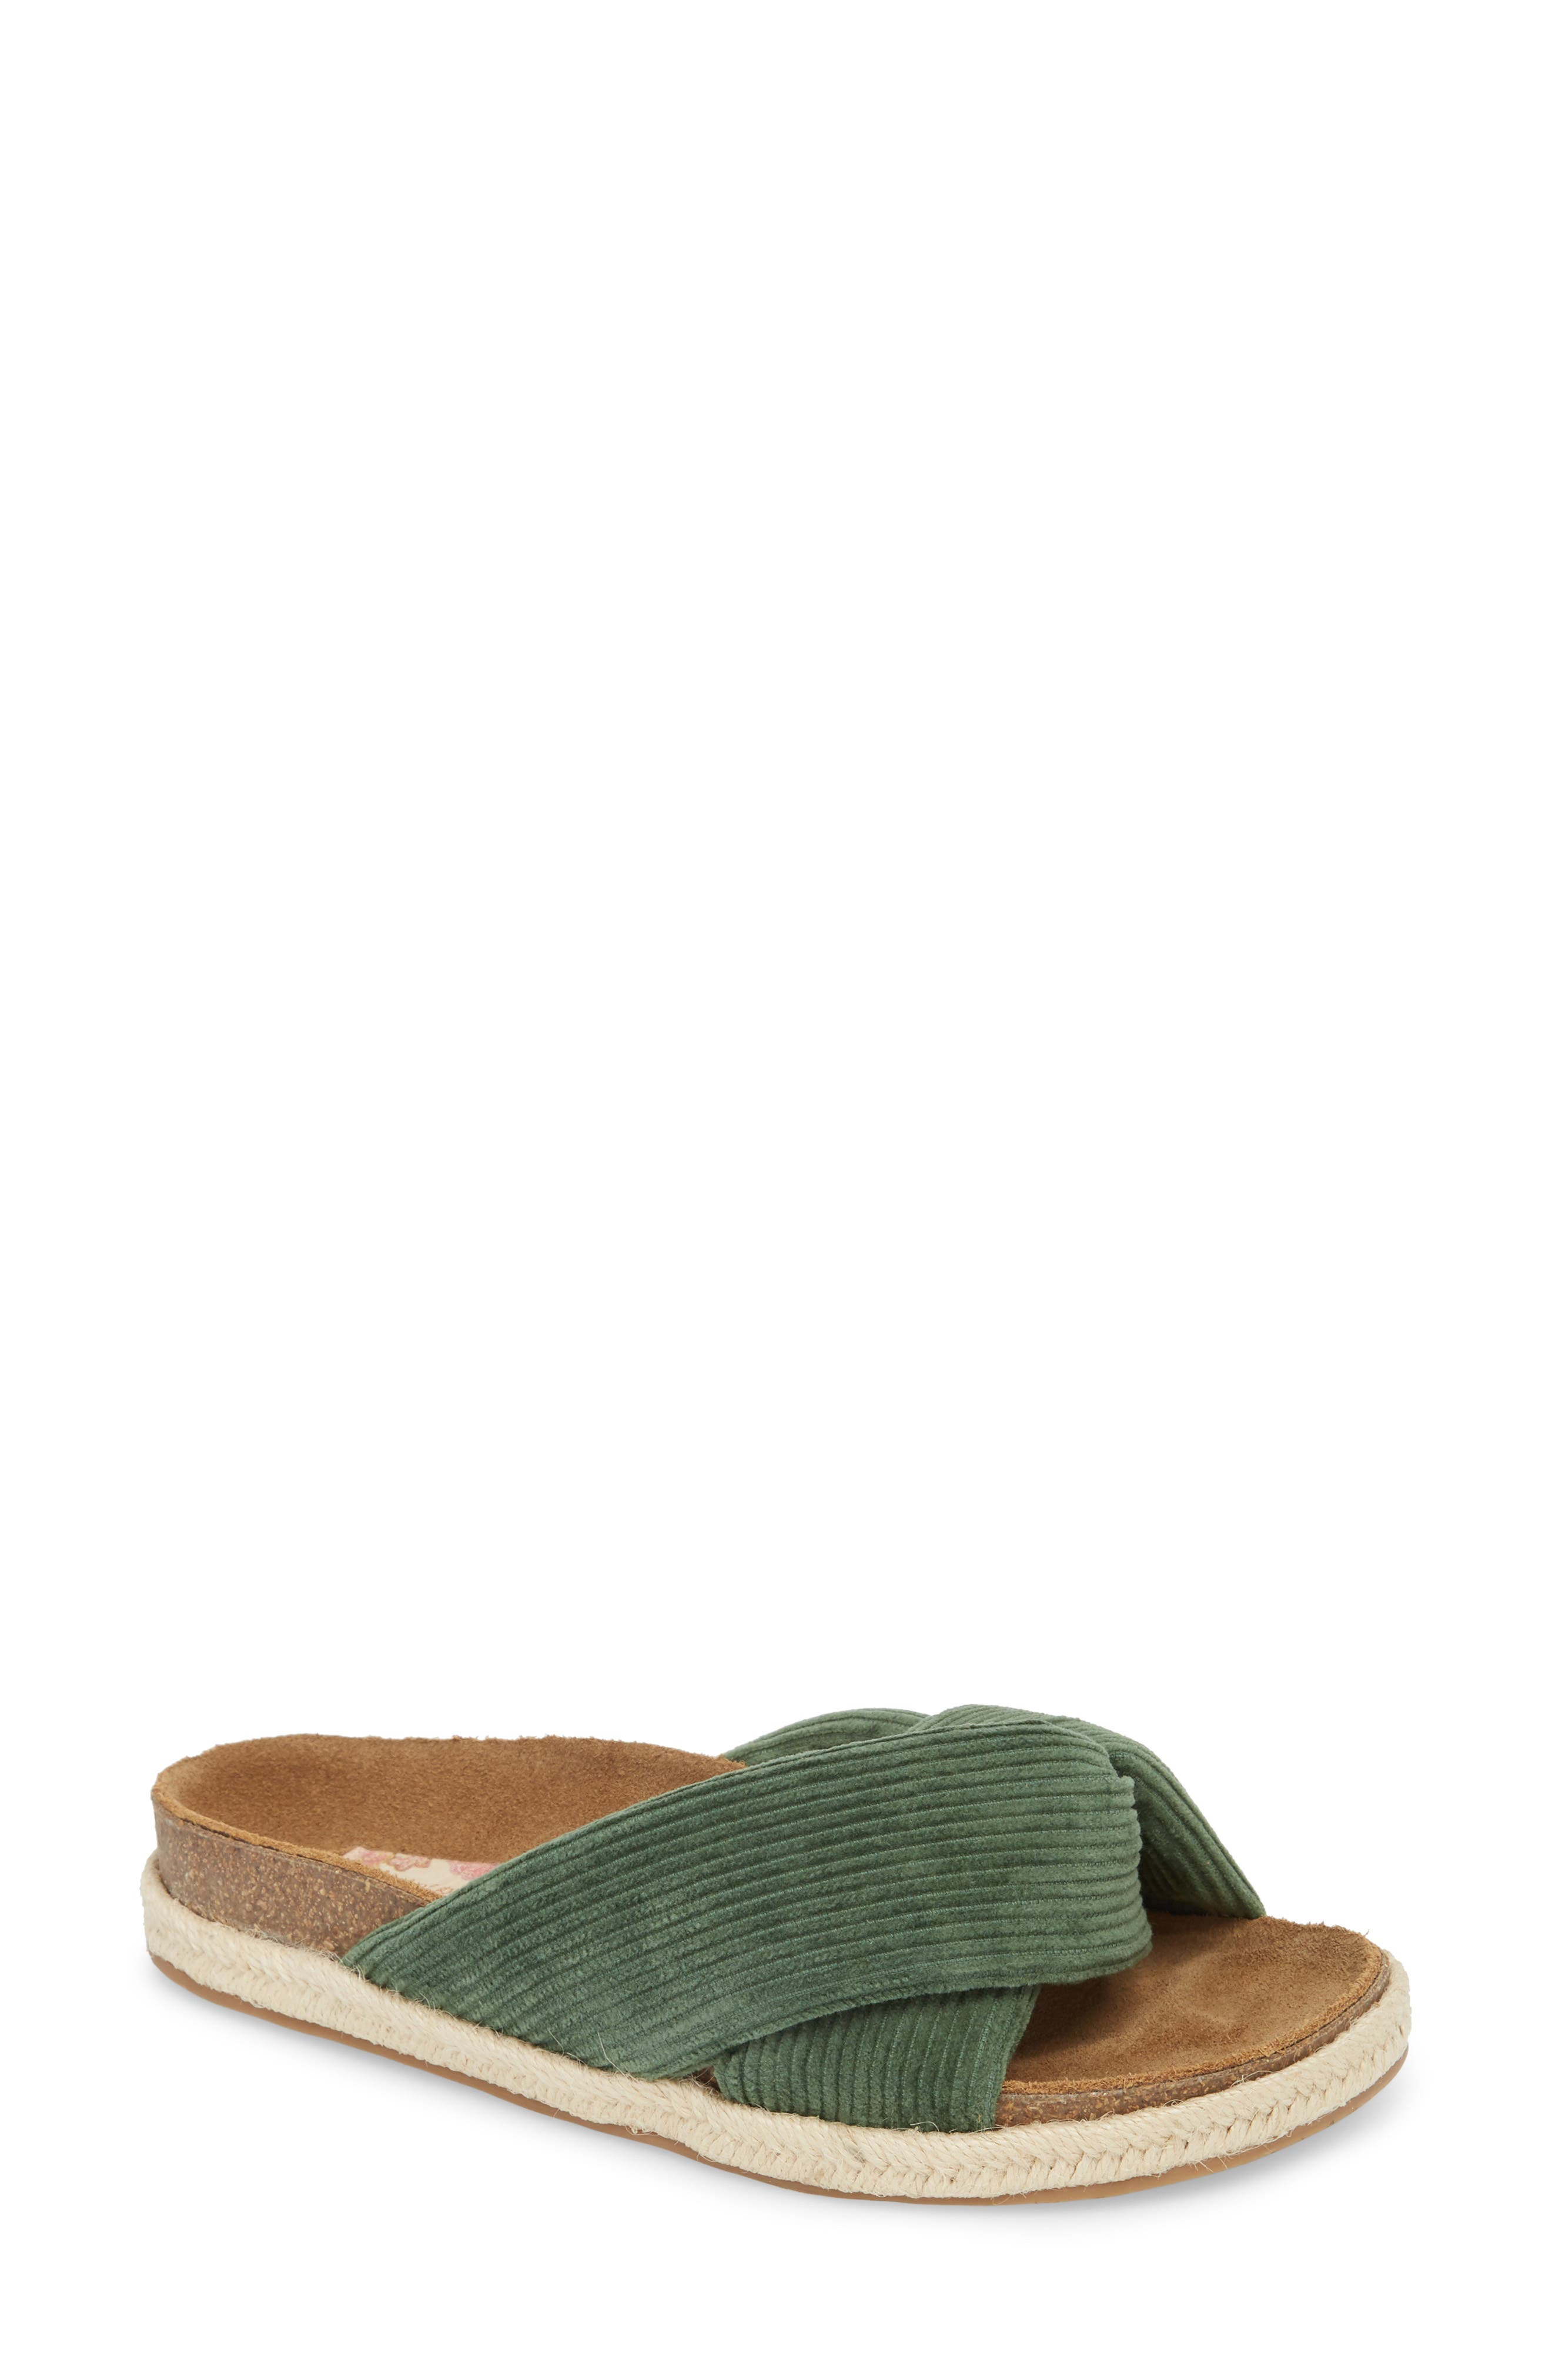 Move Over Flat Sandal,                         Main,                         color, OLIVE